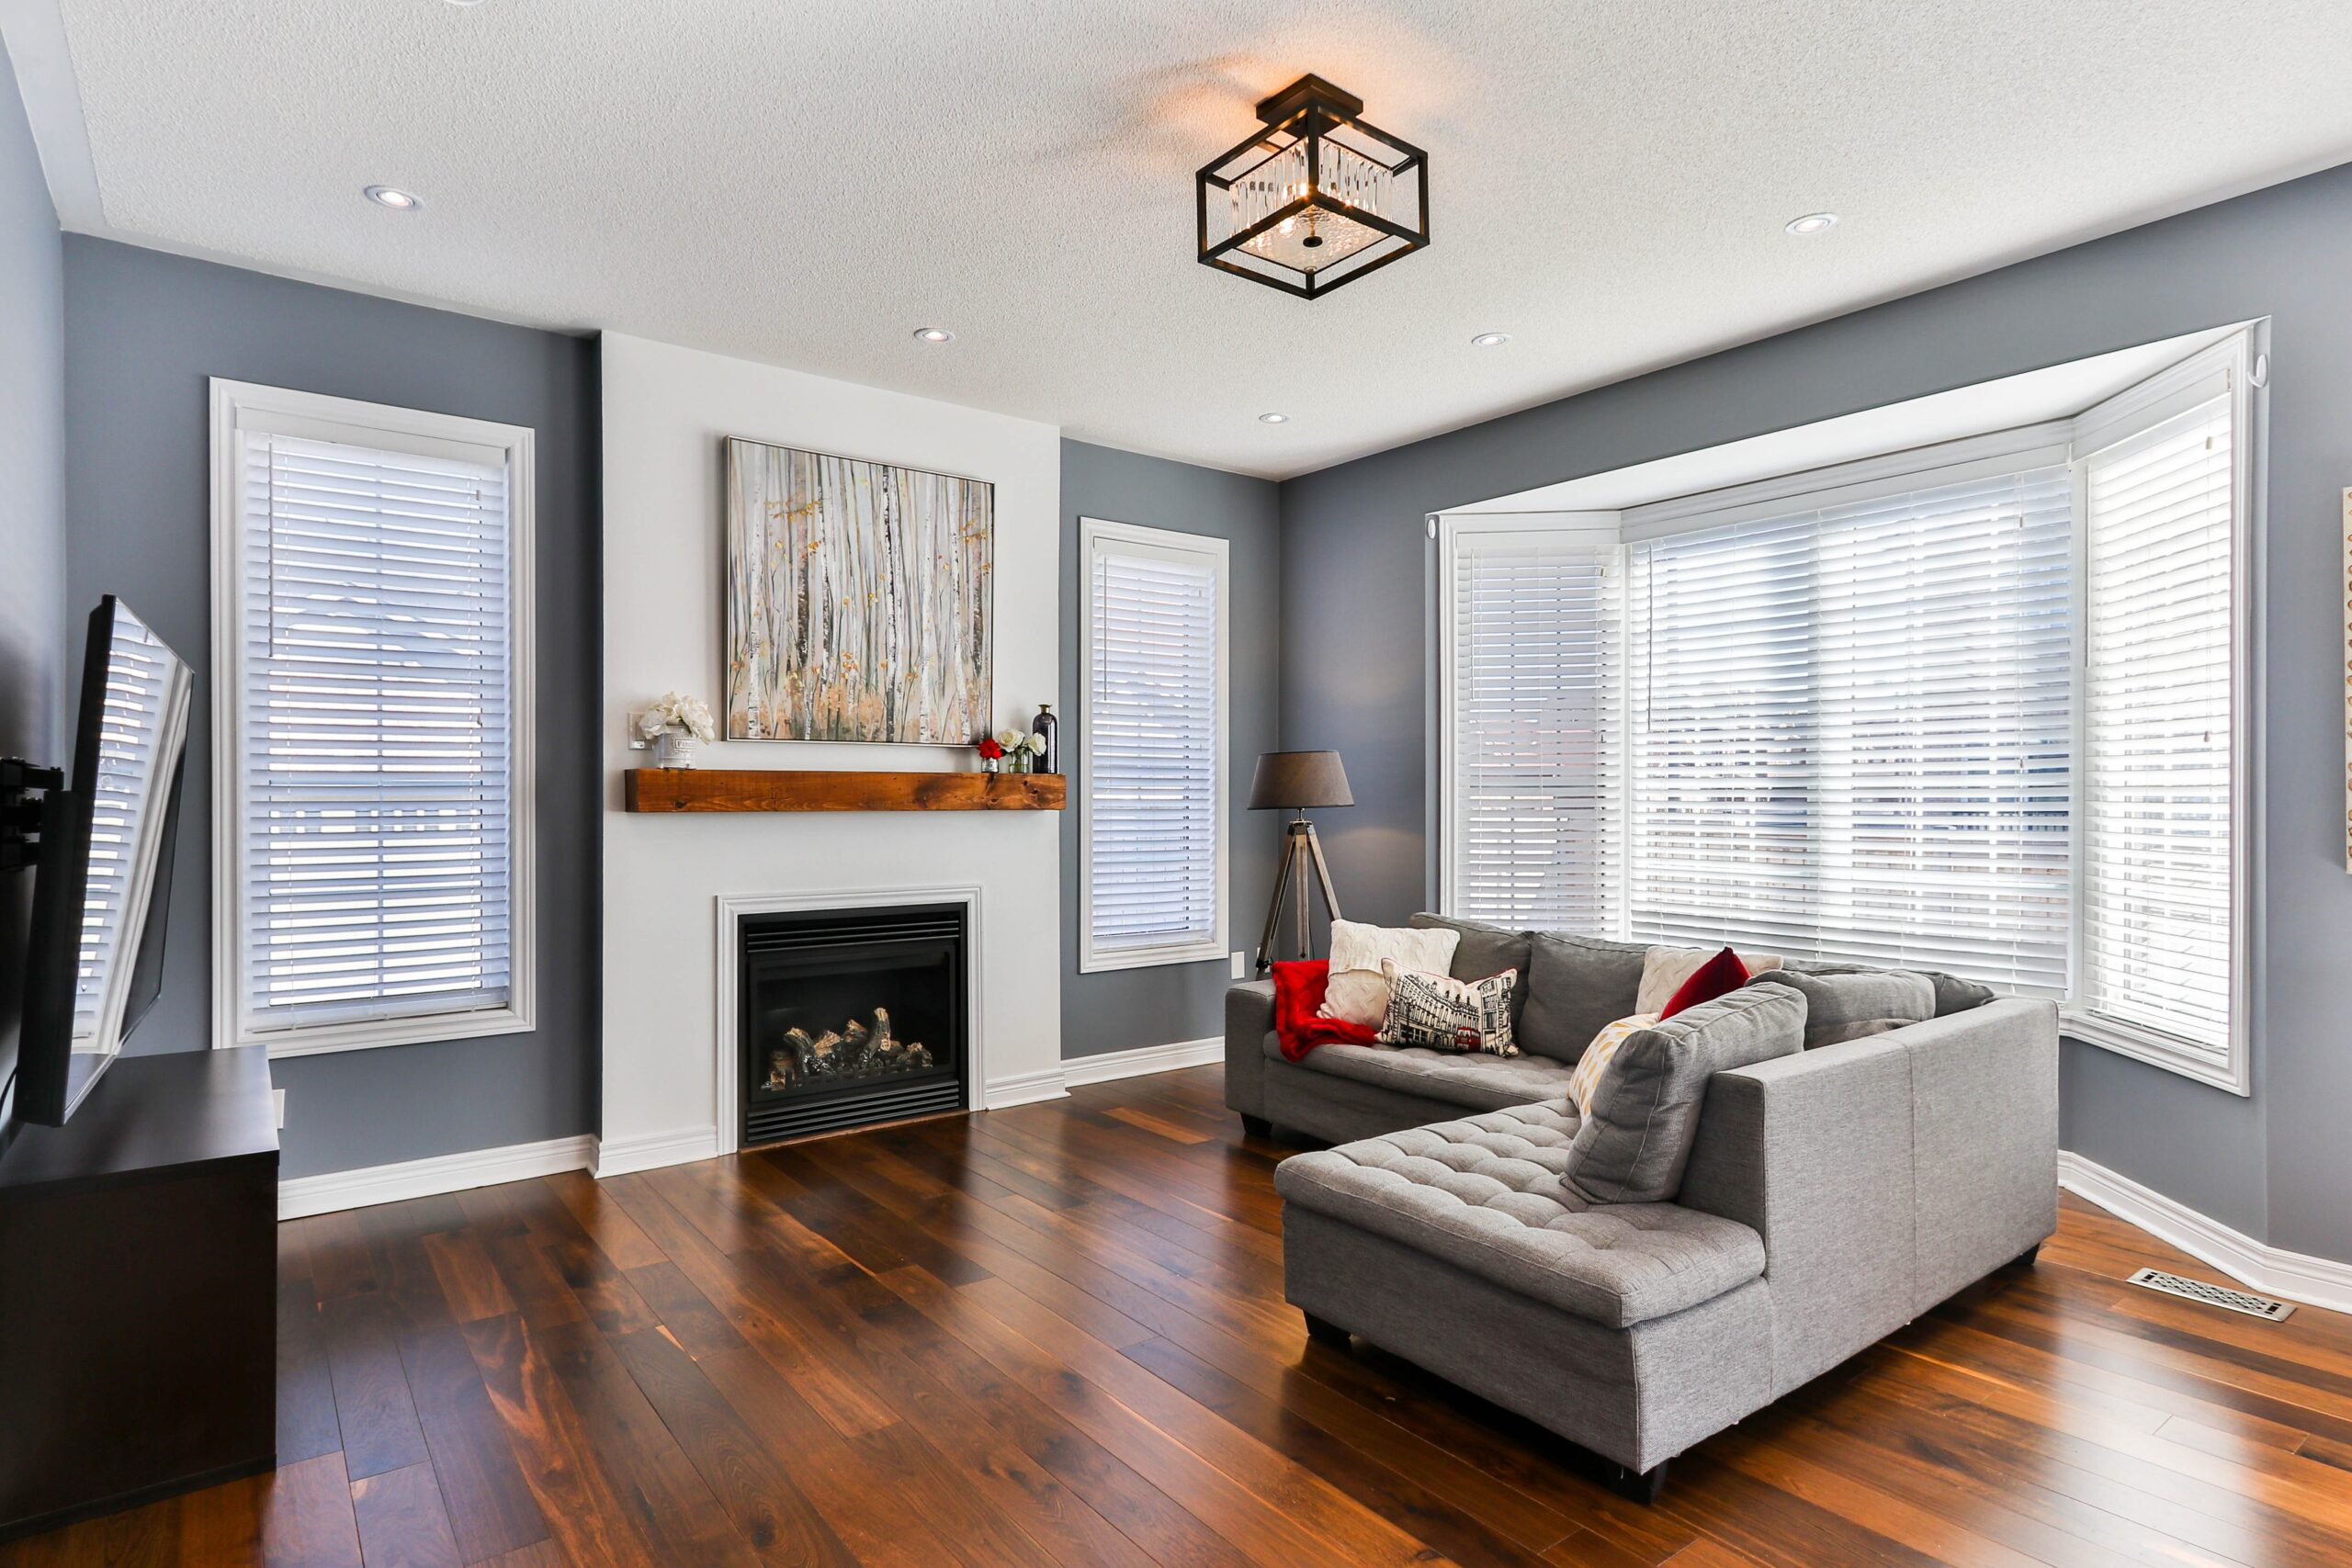 Living room with gray walls and white brick fireplace. Furnished with gray couch.